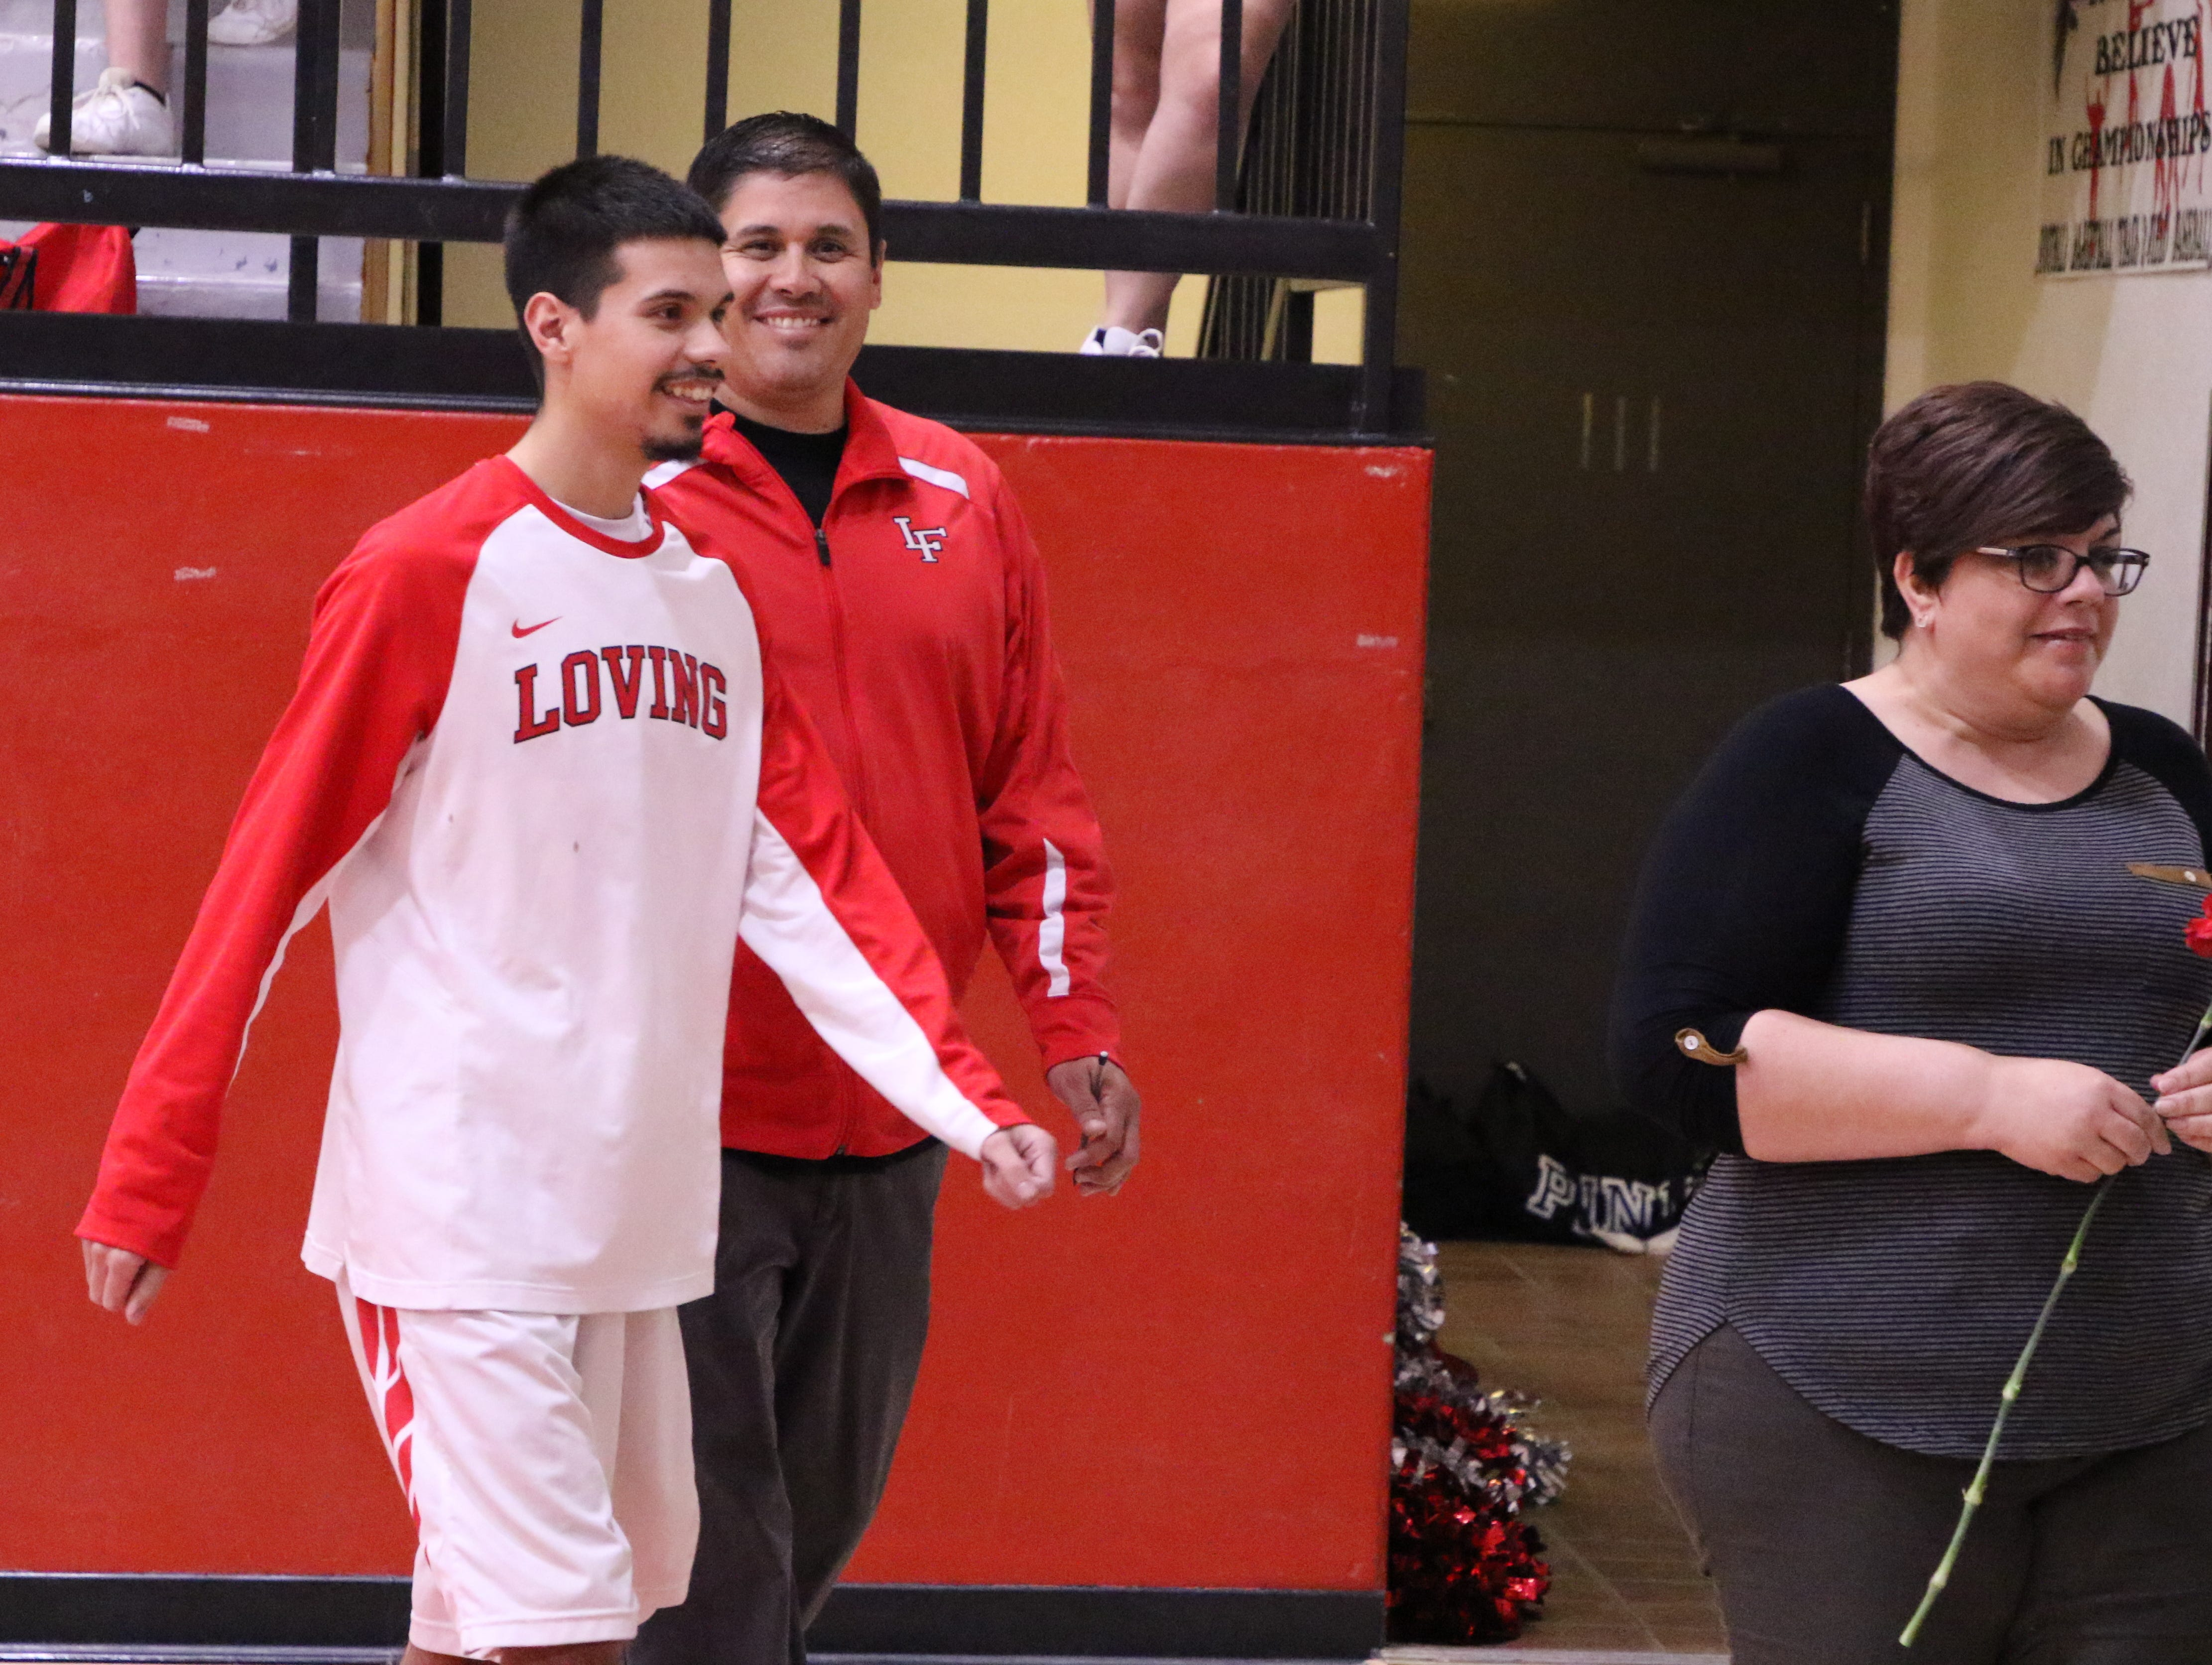 Photo highlights of Loving's Parent Night against Jal on Feb. 19.